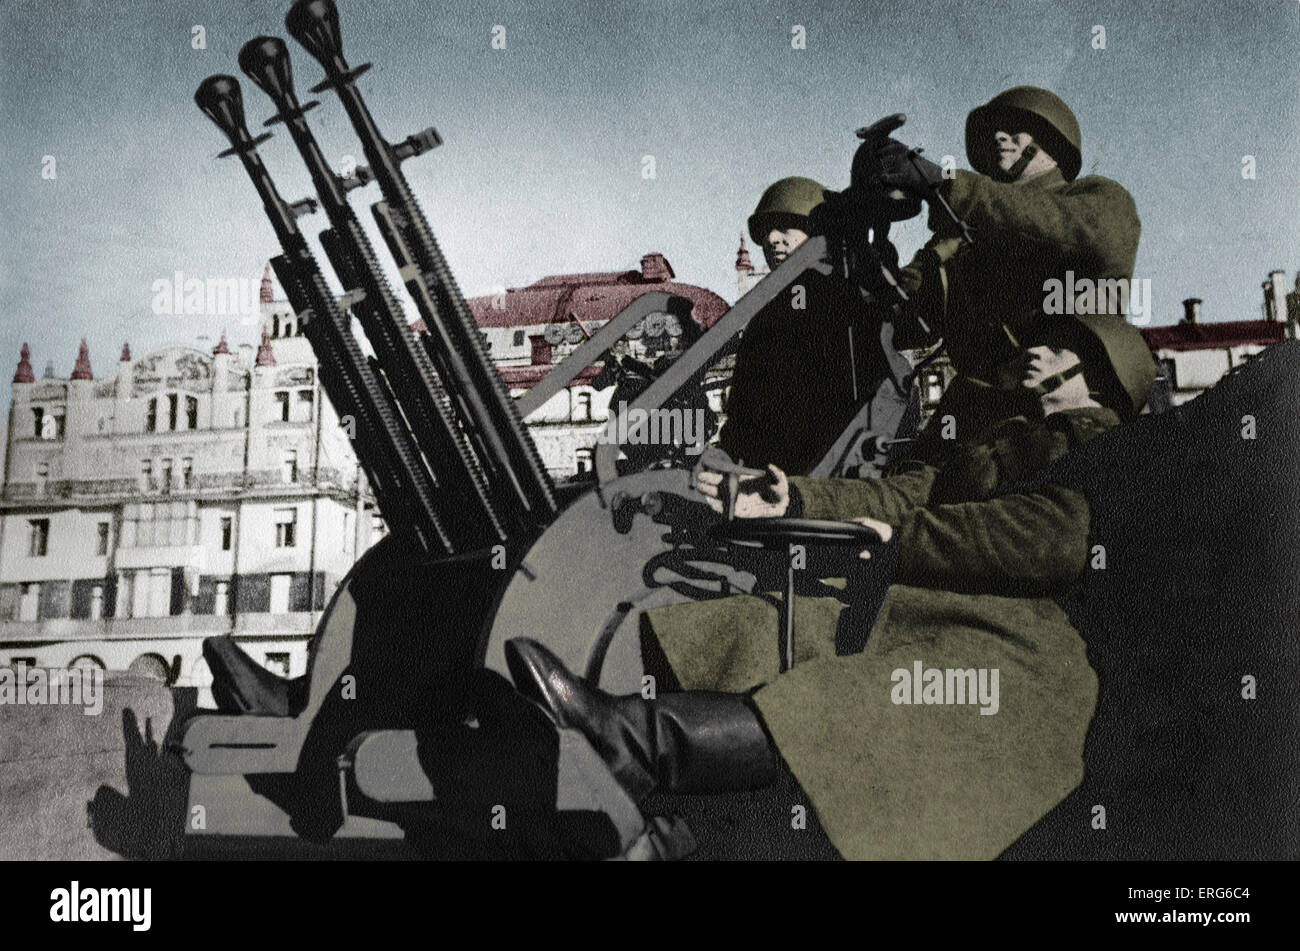 Anti-aircraft station in the centre of Moscow 1941 - during World War II Prokofiev Shostakovich background.  Schostakowitsch - Stock Image